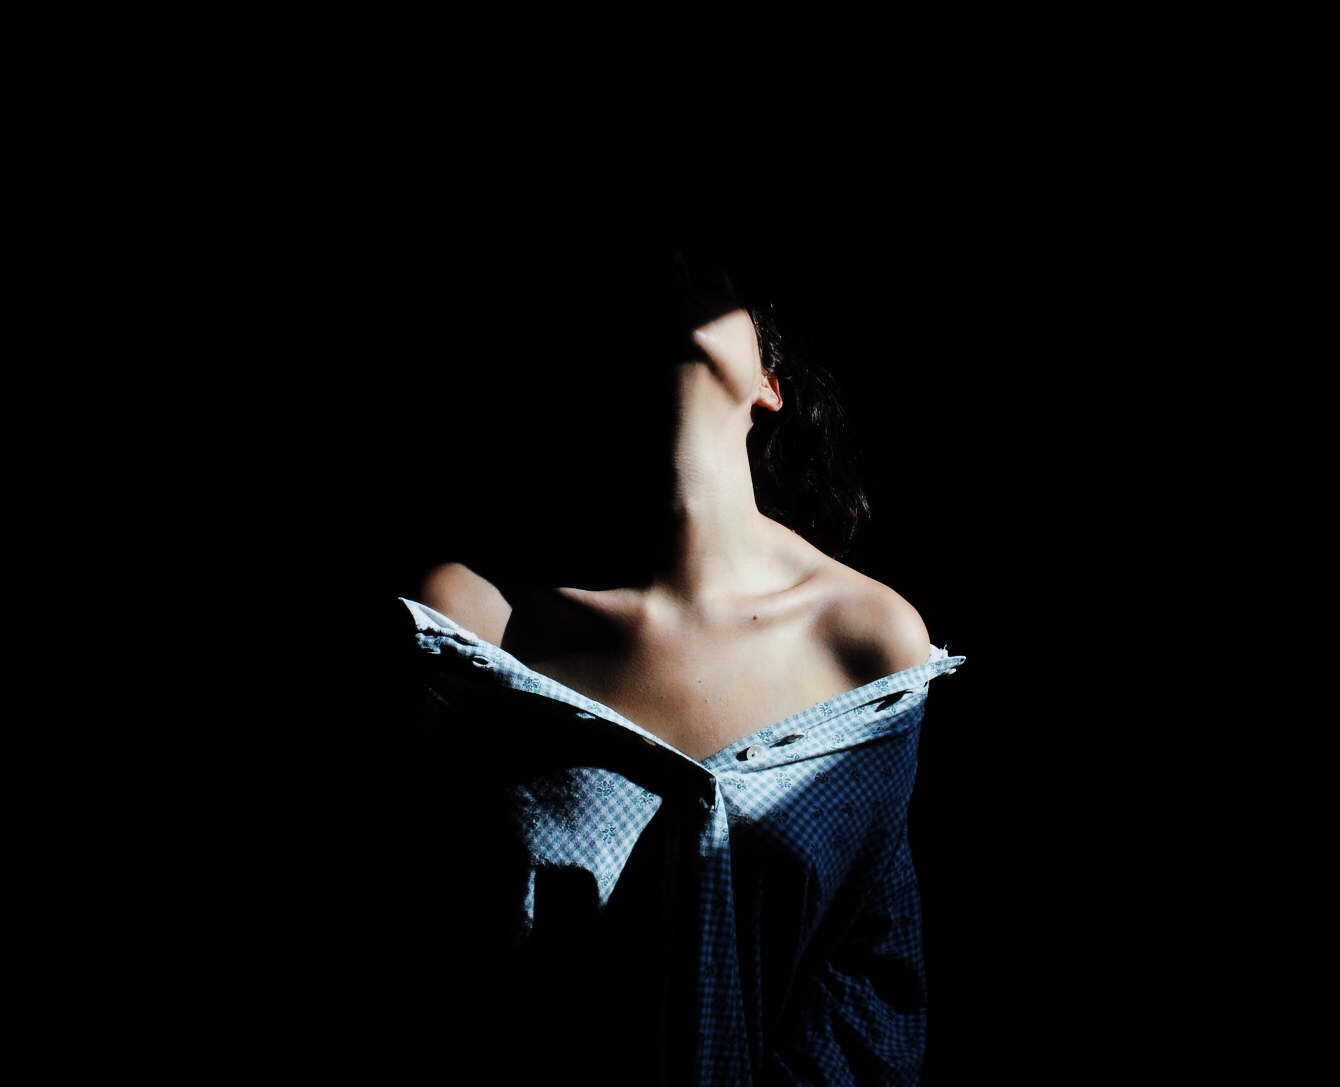 Beatrice Armano, photography, dark, art, obscure, conceptual photography